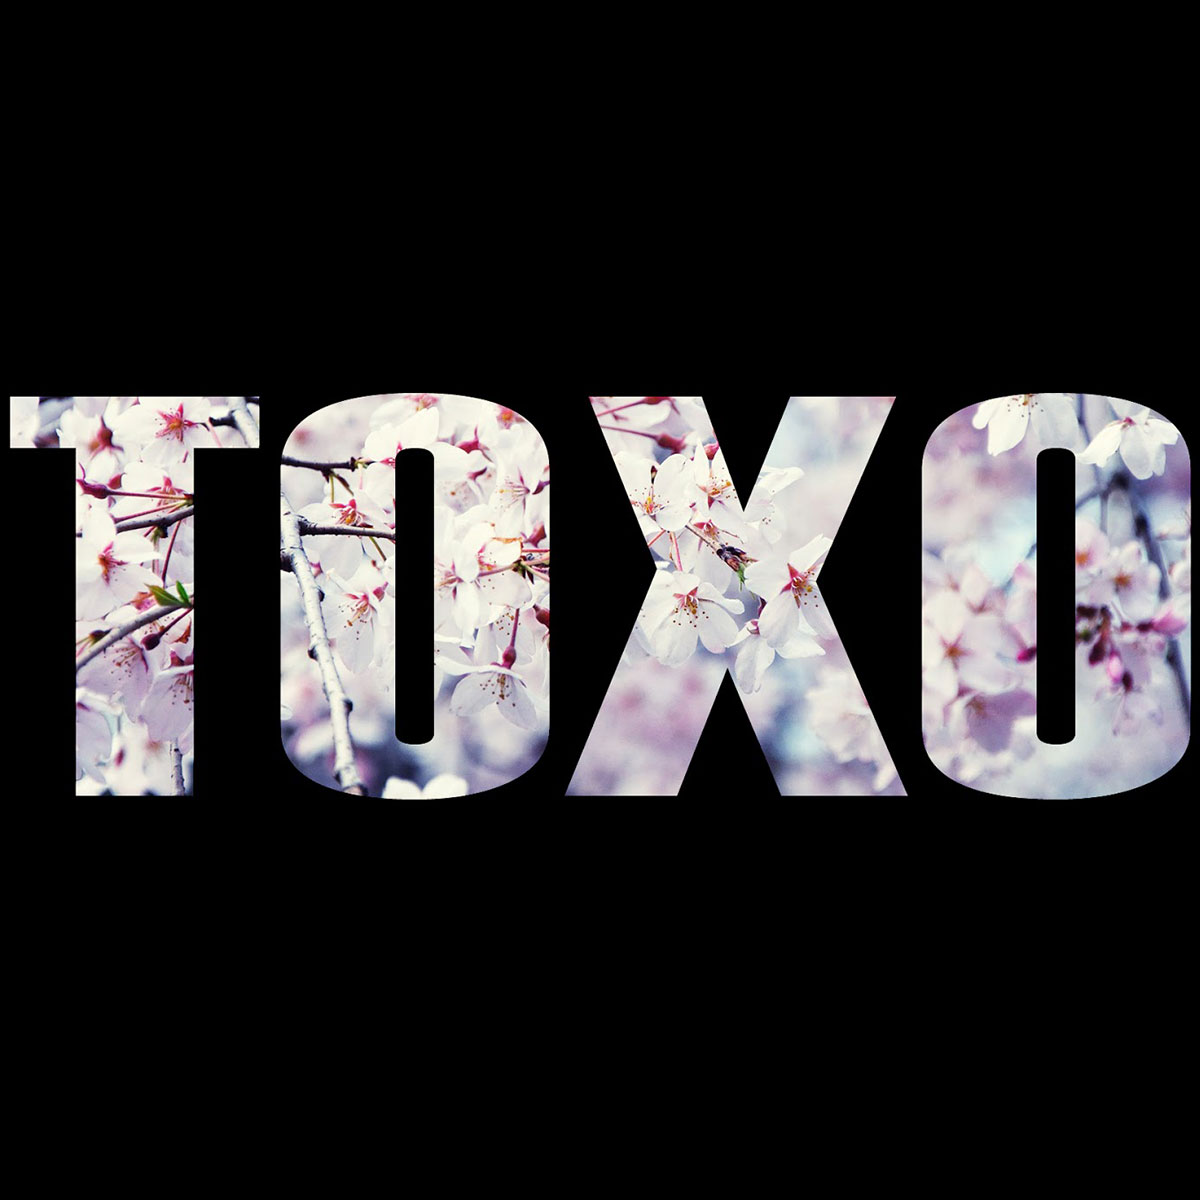 Toxo Music